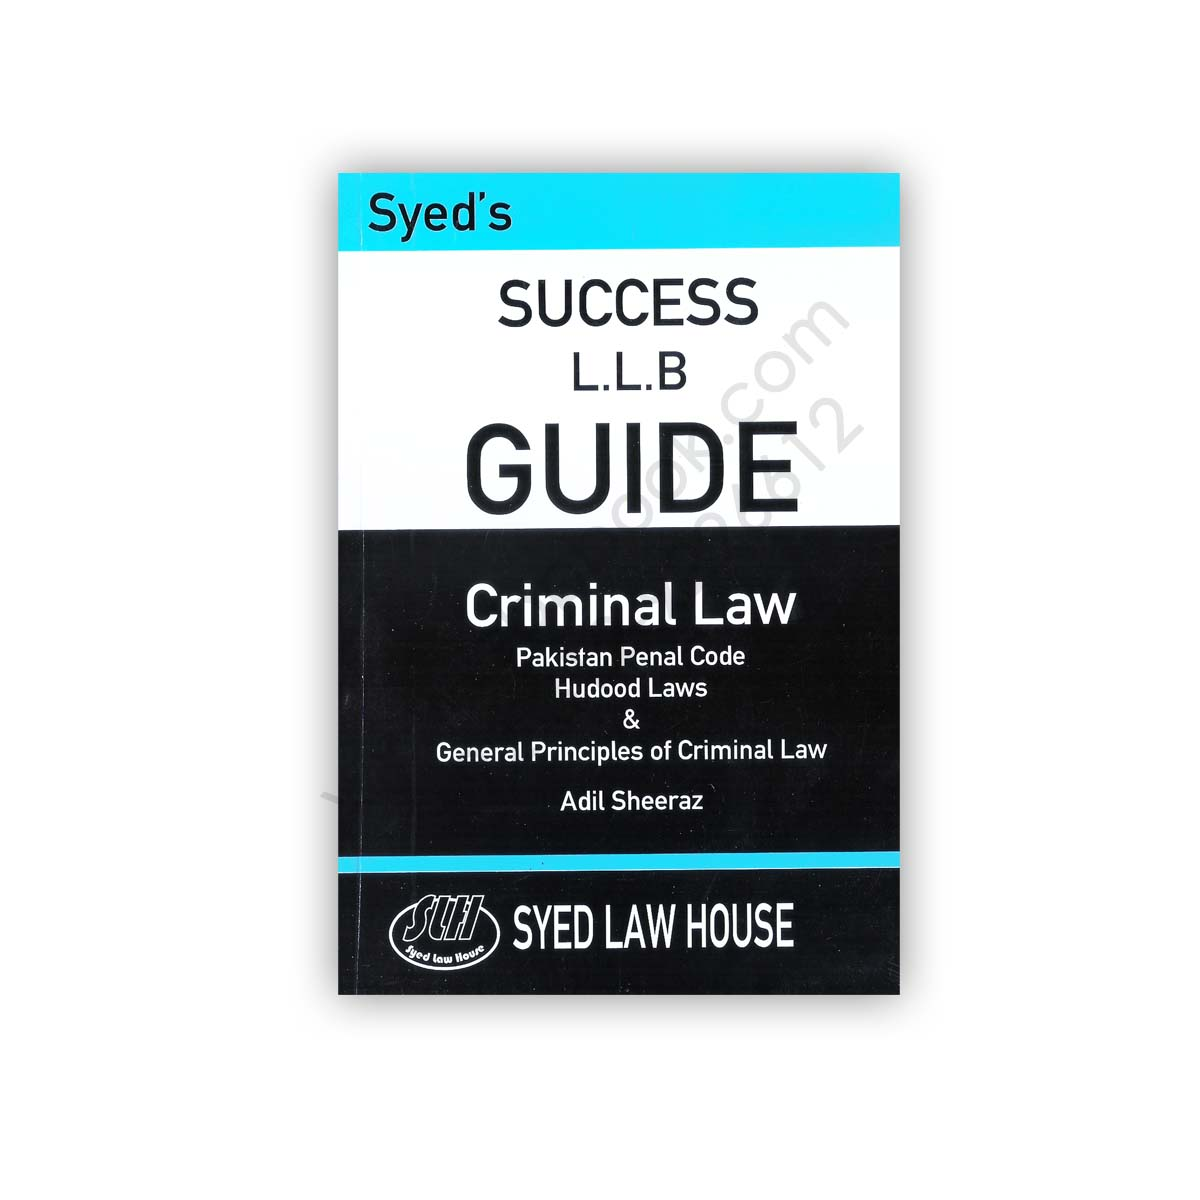 syeds success llb guide criminal law adil sheeraz